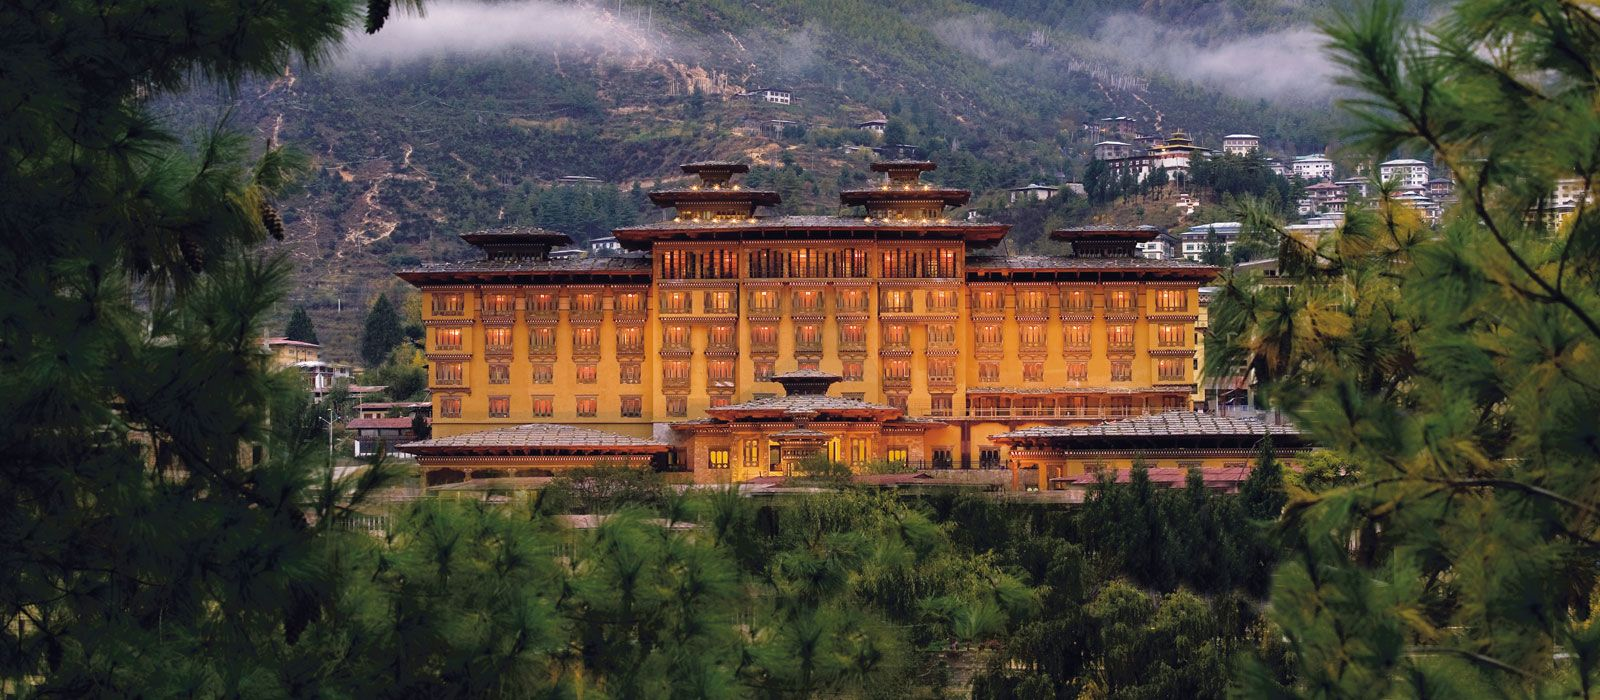 Luxury Bhutan and Thailand Paradise Islands Tour Trip 1